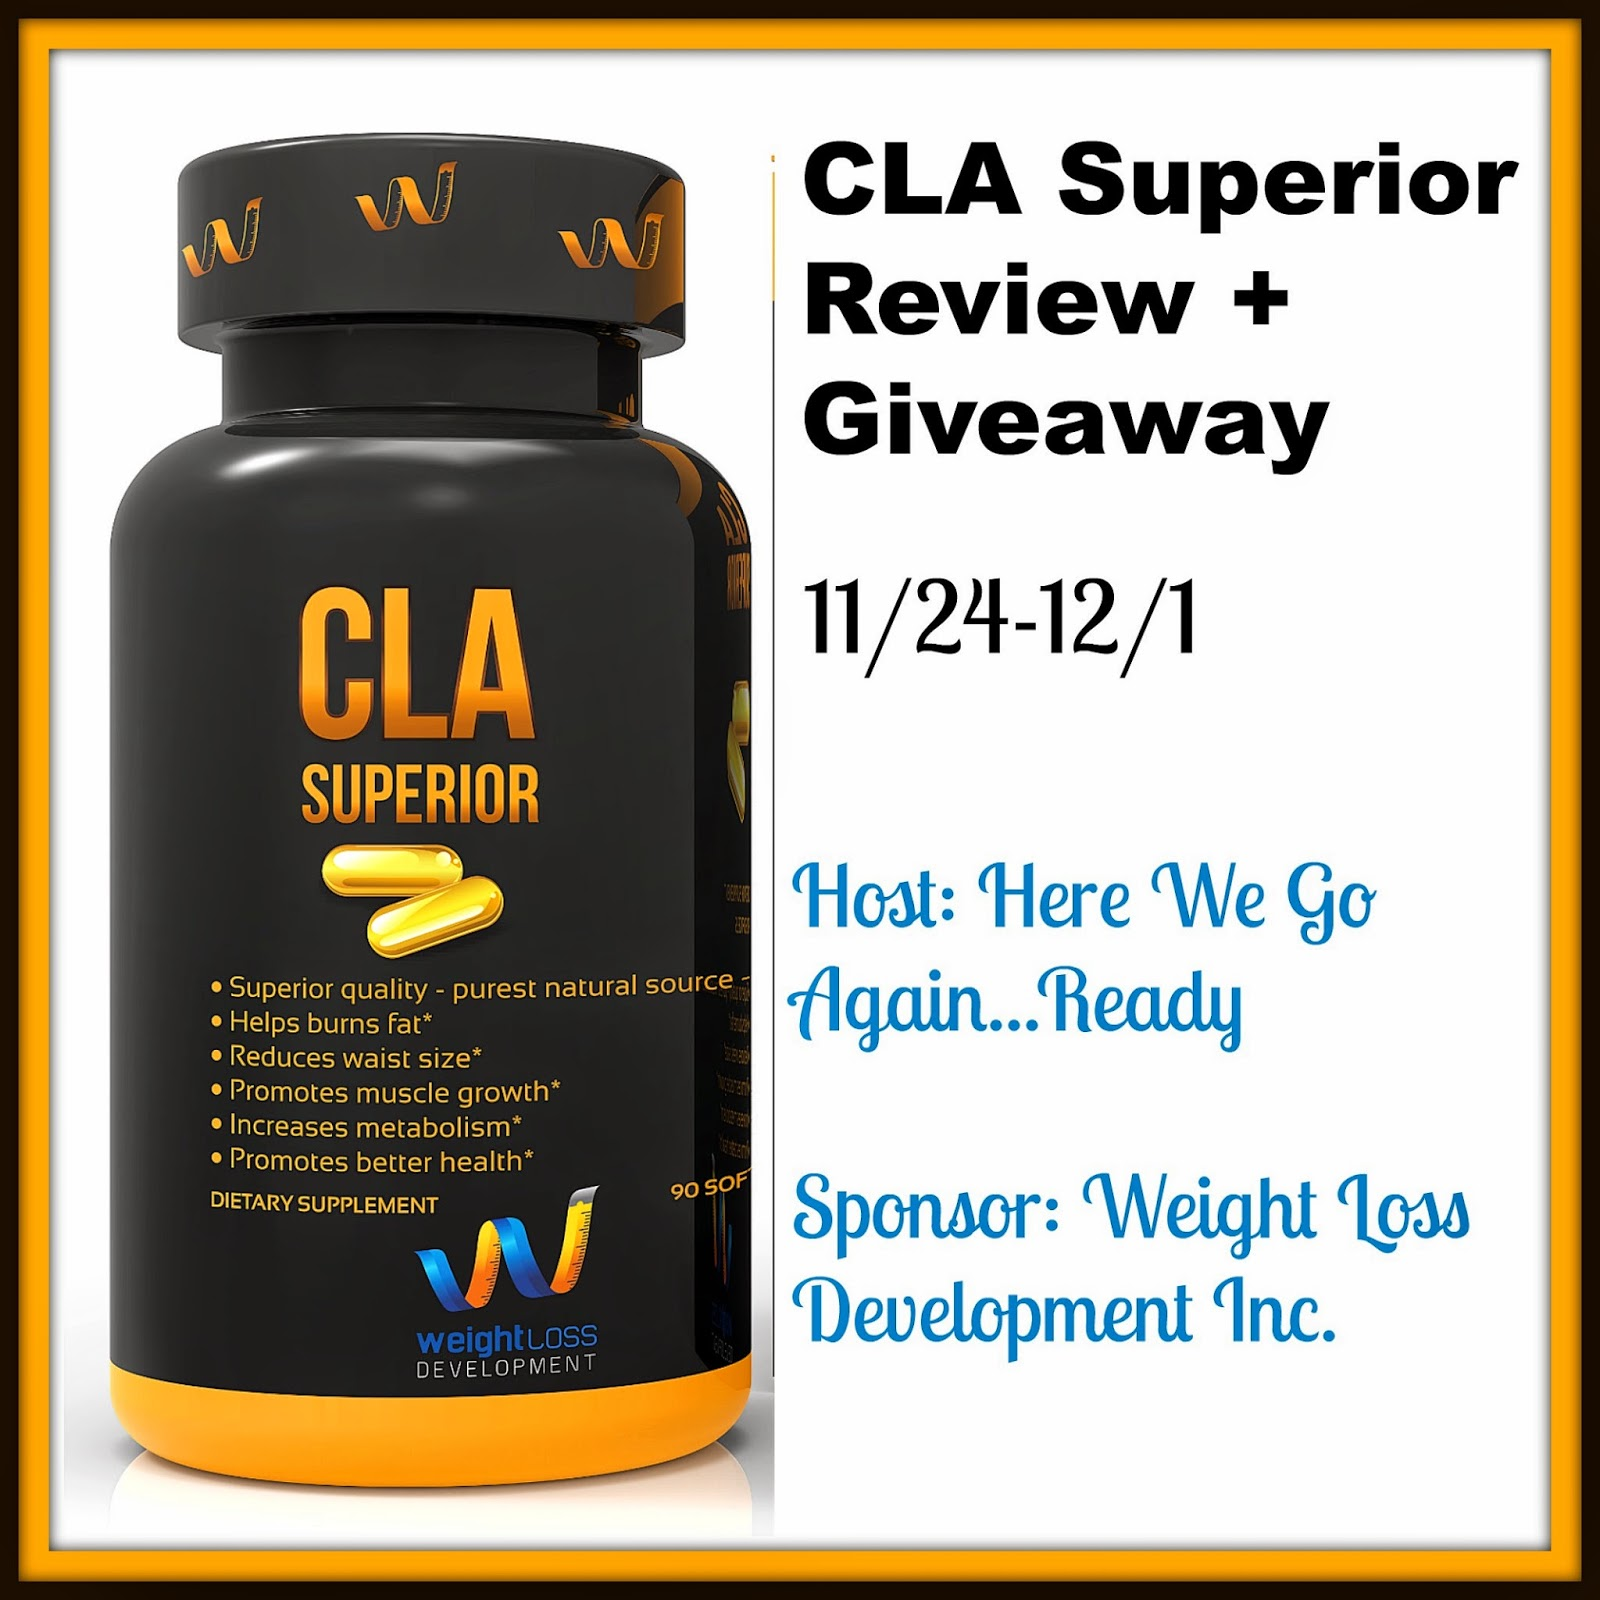 Here we go again ready weight loss development inc cla for Product development inc